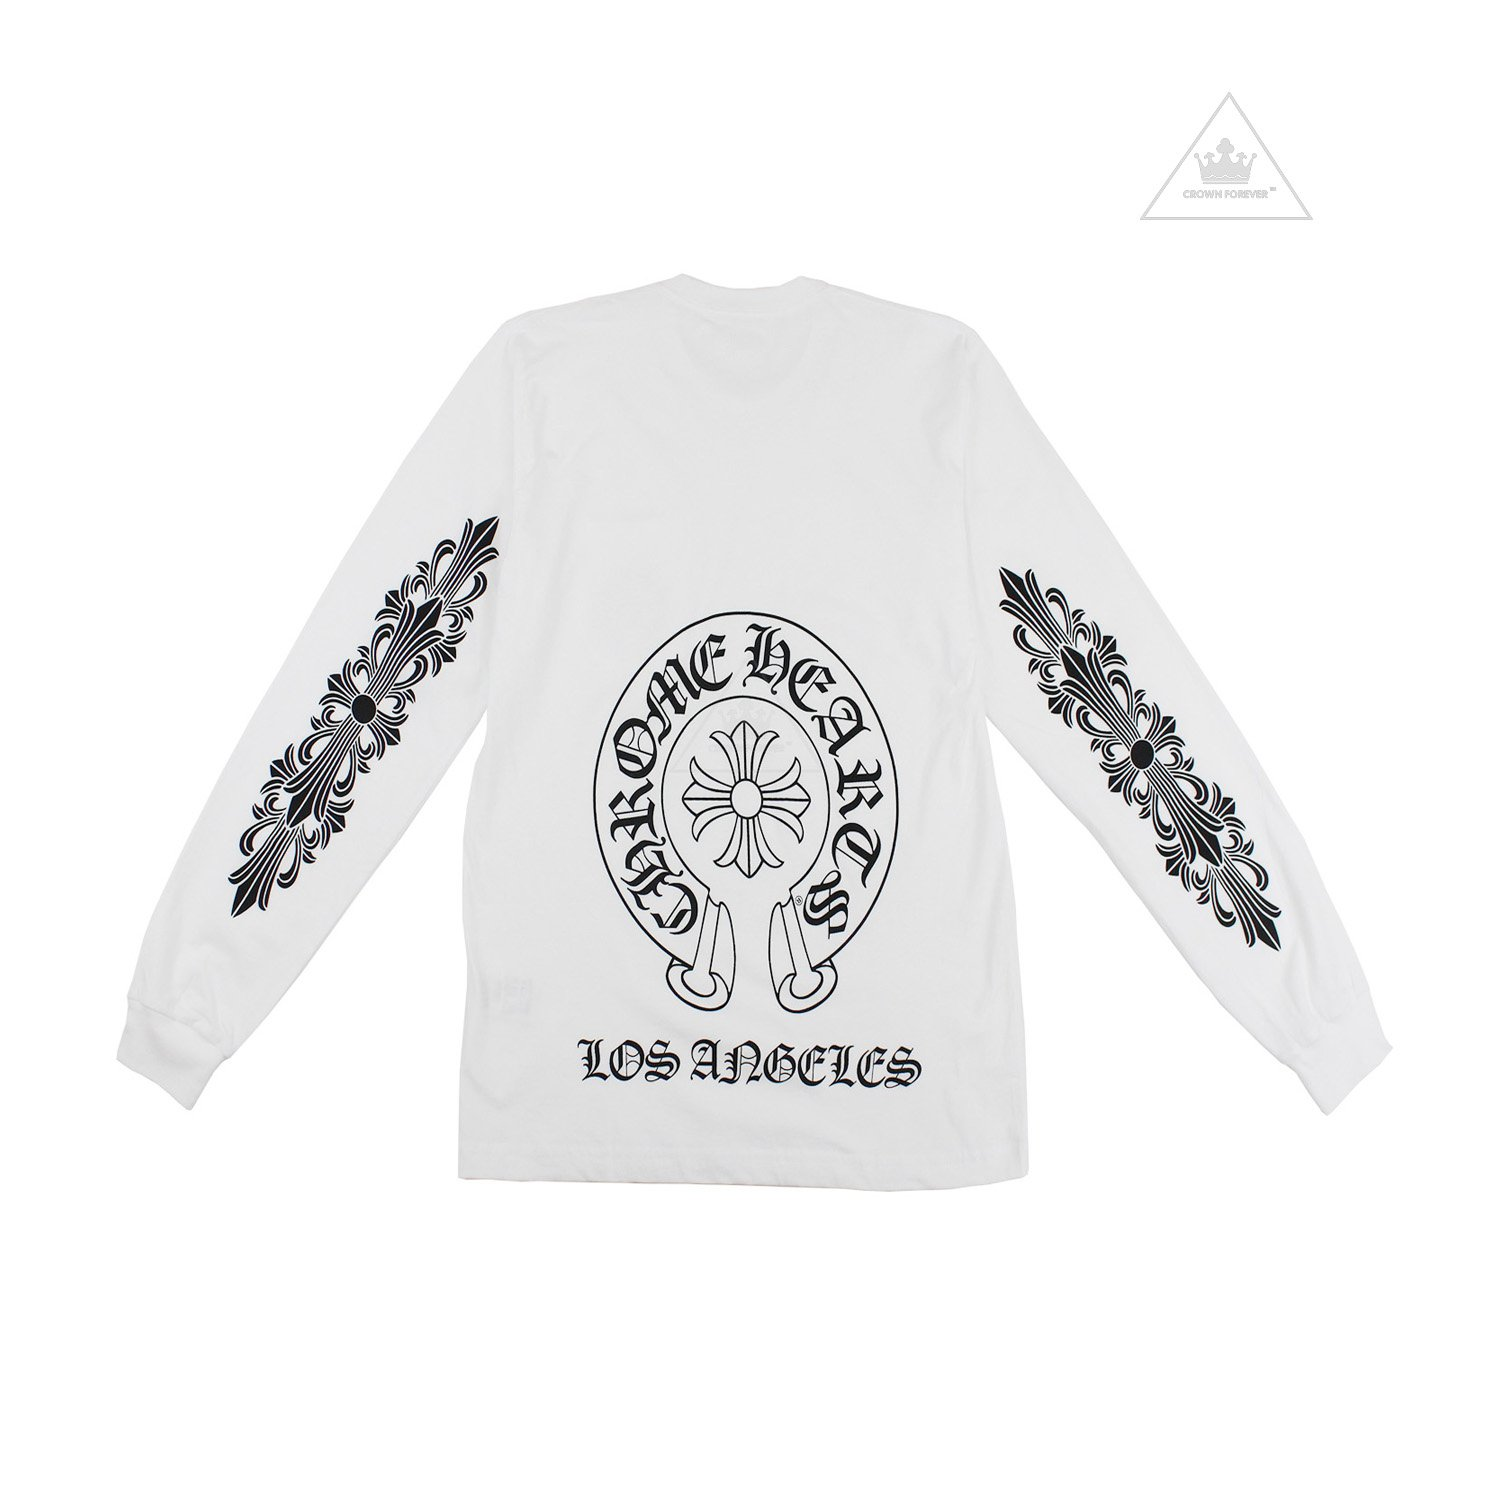 CH Los Angeles Horseshoe Floral Long Sleeve T Shirt White by CHROME HEARTS, available on crownforeverla.com for $350 Kylie Jenner Outerwear SIMILAR PRODUCT